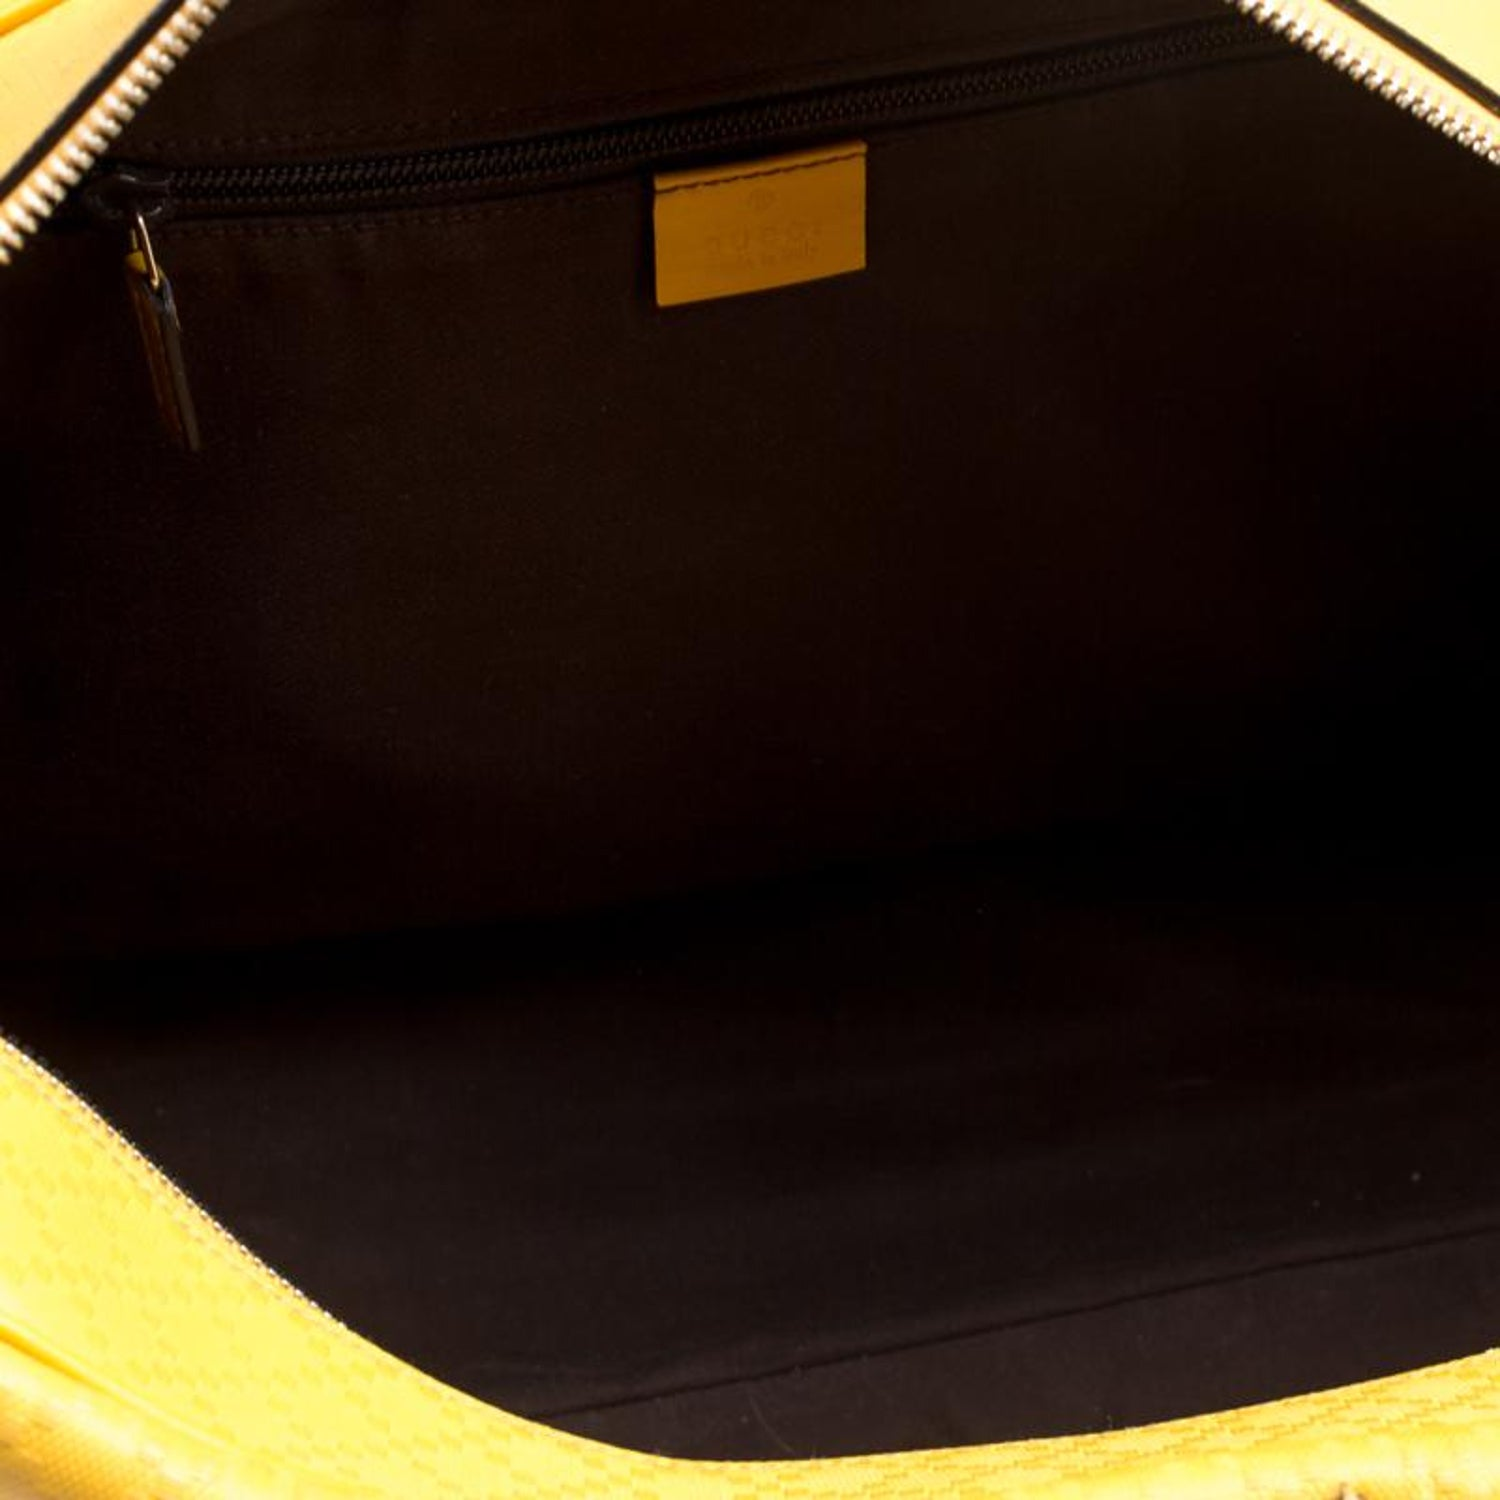 3556a2327960 Gucci Mustard Diamante Leather Medium Duffle Bag For Sale at 1stdibs